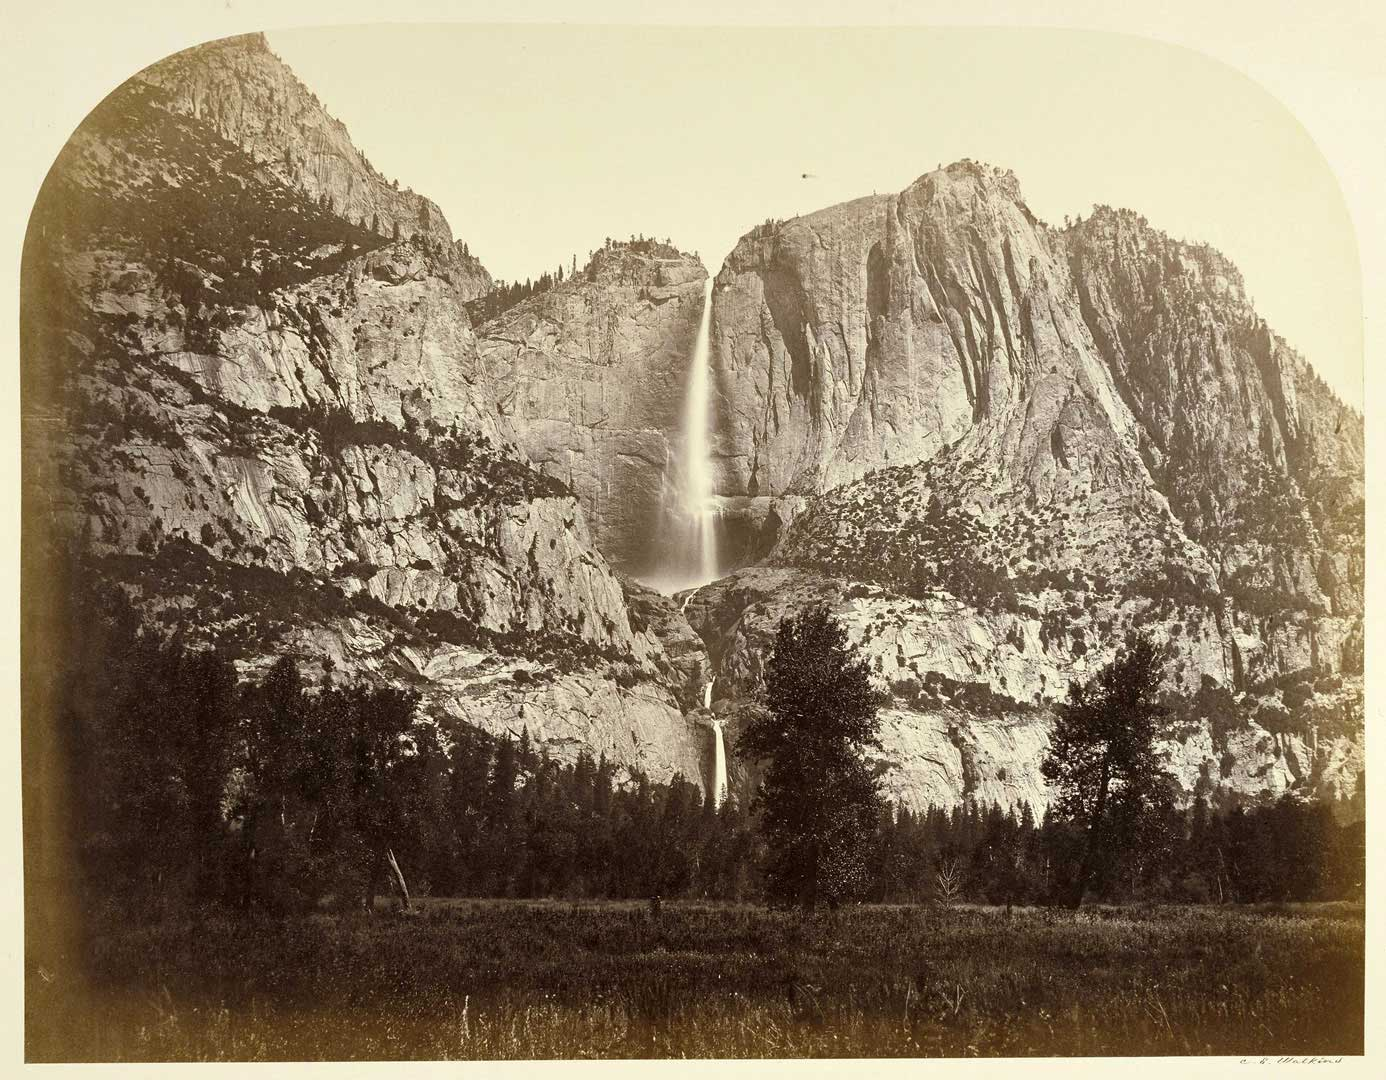 Carleton Watkins, The Bridalveil Fall, Yosemite, 1861, albumen silver print from glass negative, courtesy:  J. Paul Getty Museum, Los Angeles